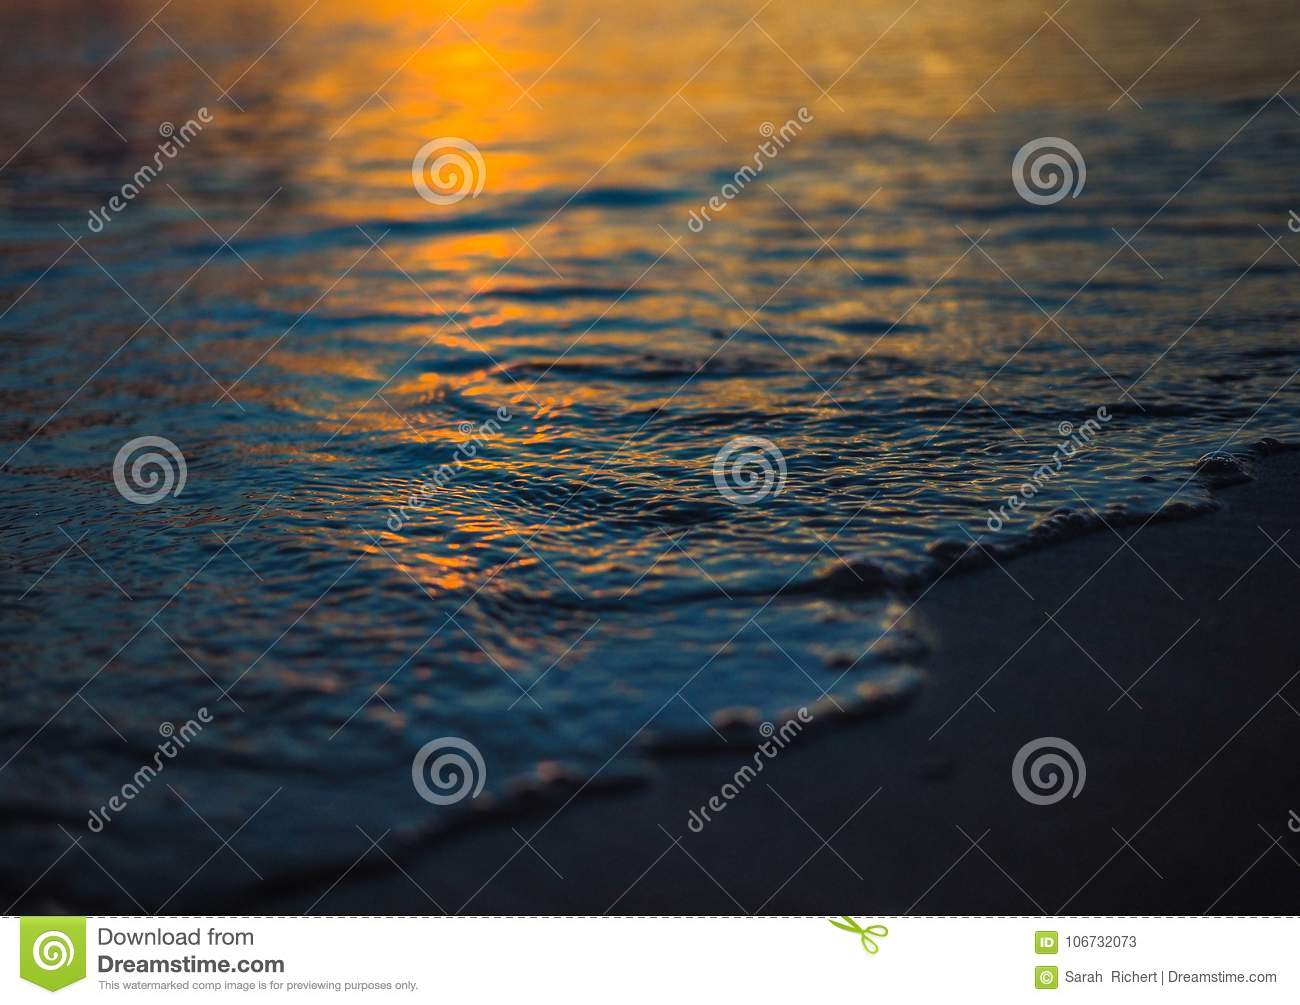 Detail of the sea at sunset